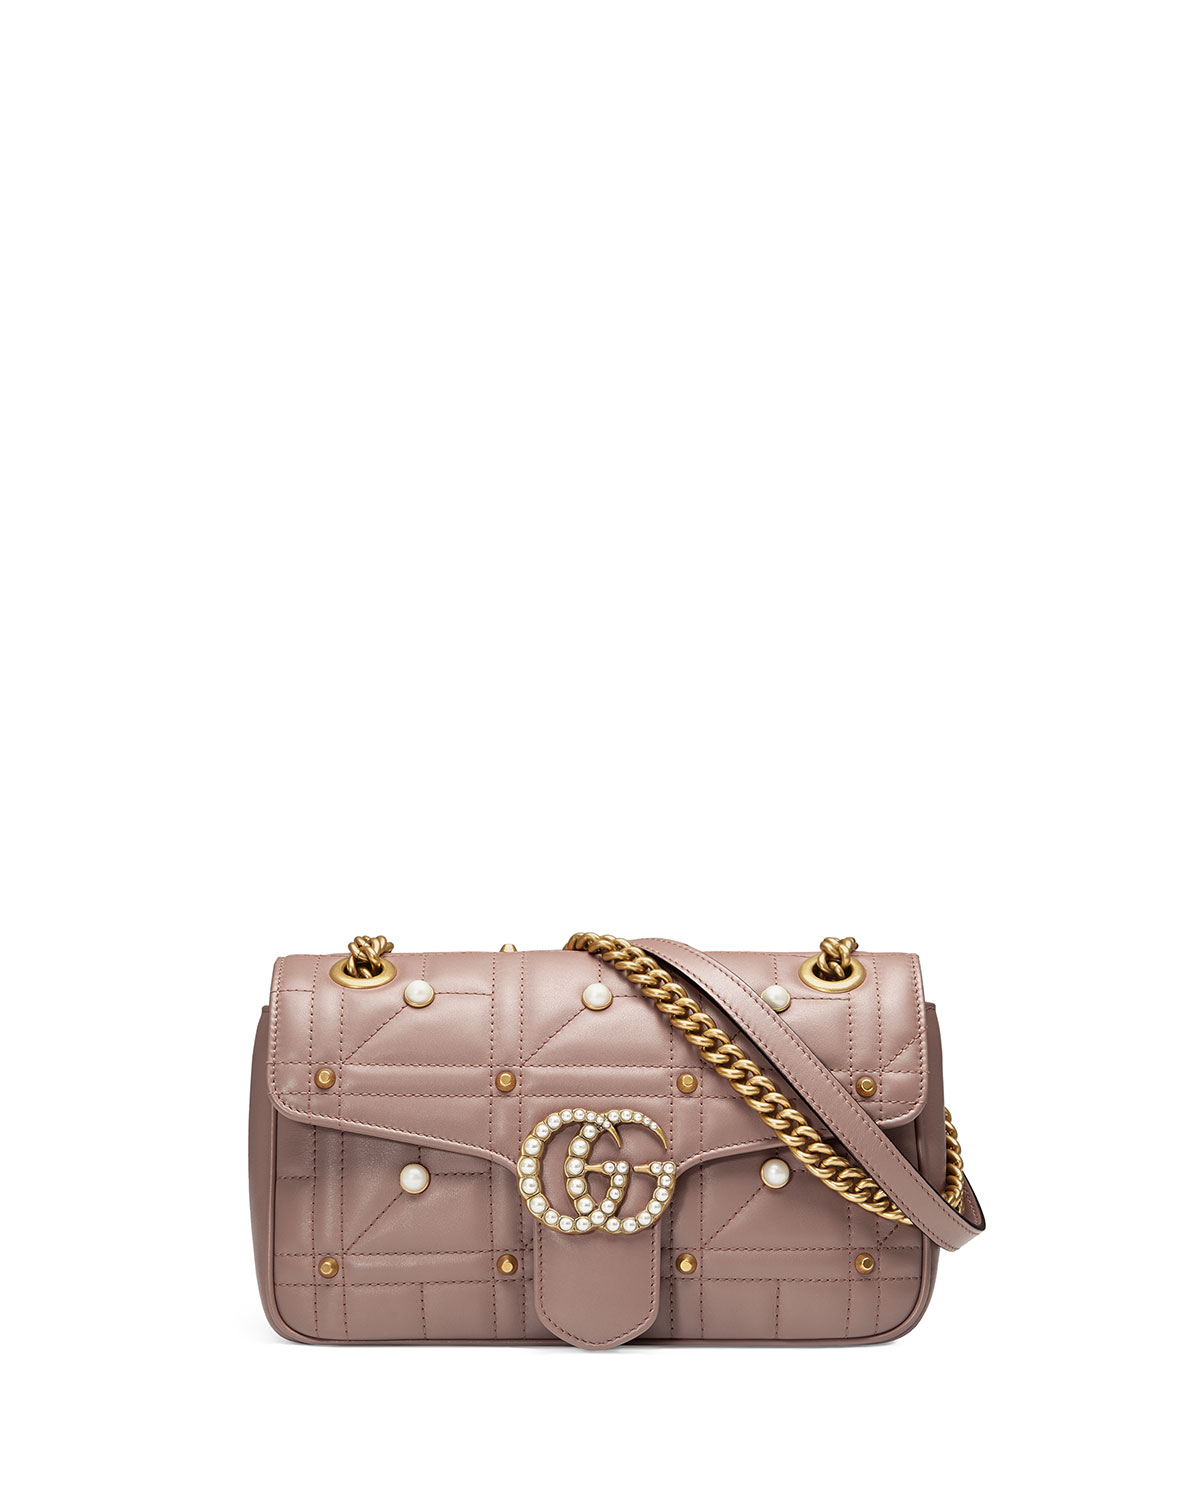 acd6ede6f1e Gucci GG Marmont Small Pearly Shoulder Bag